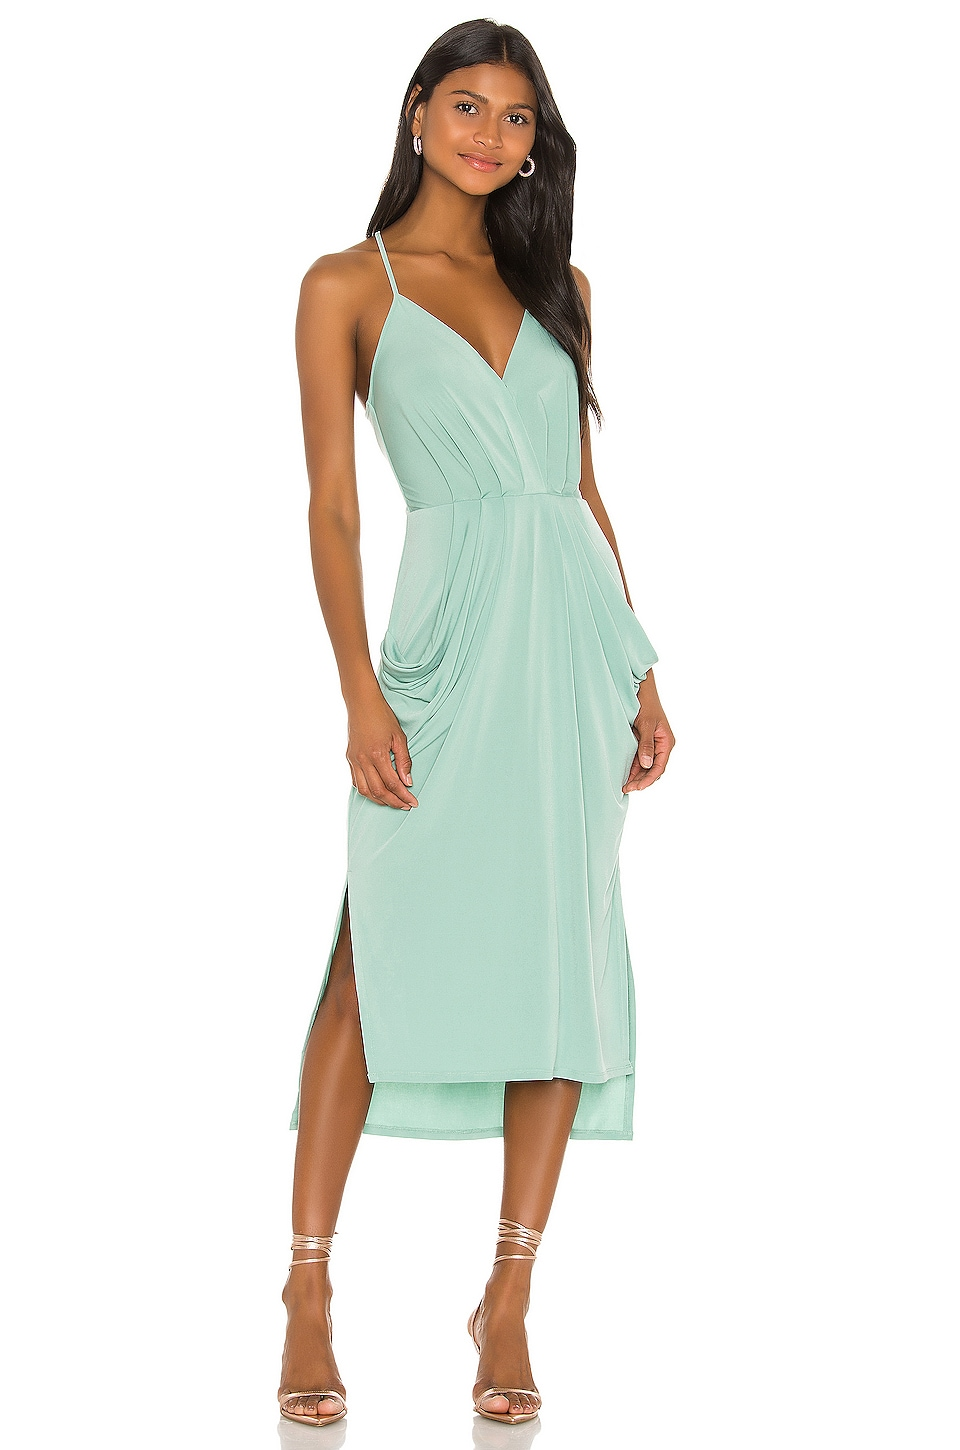 Faux Wrap Midi Dress             BCBGeneration                                                                                                                                         Sale price:                                                                       CA$ 51.34                                                                  Previous price:                                                                       CA$ 105.38 14